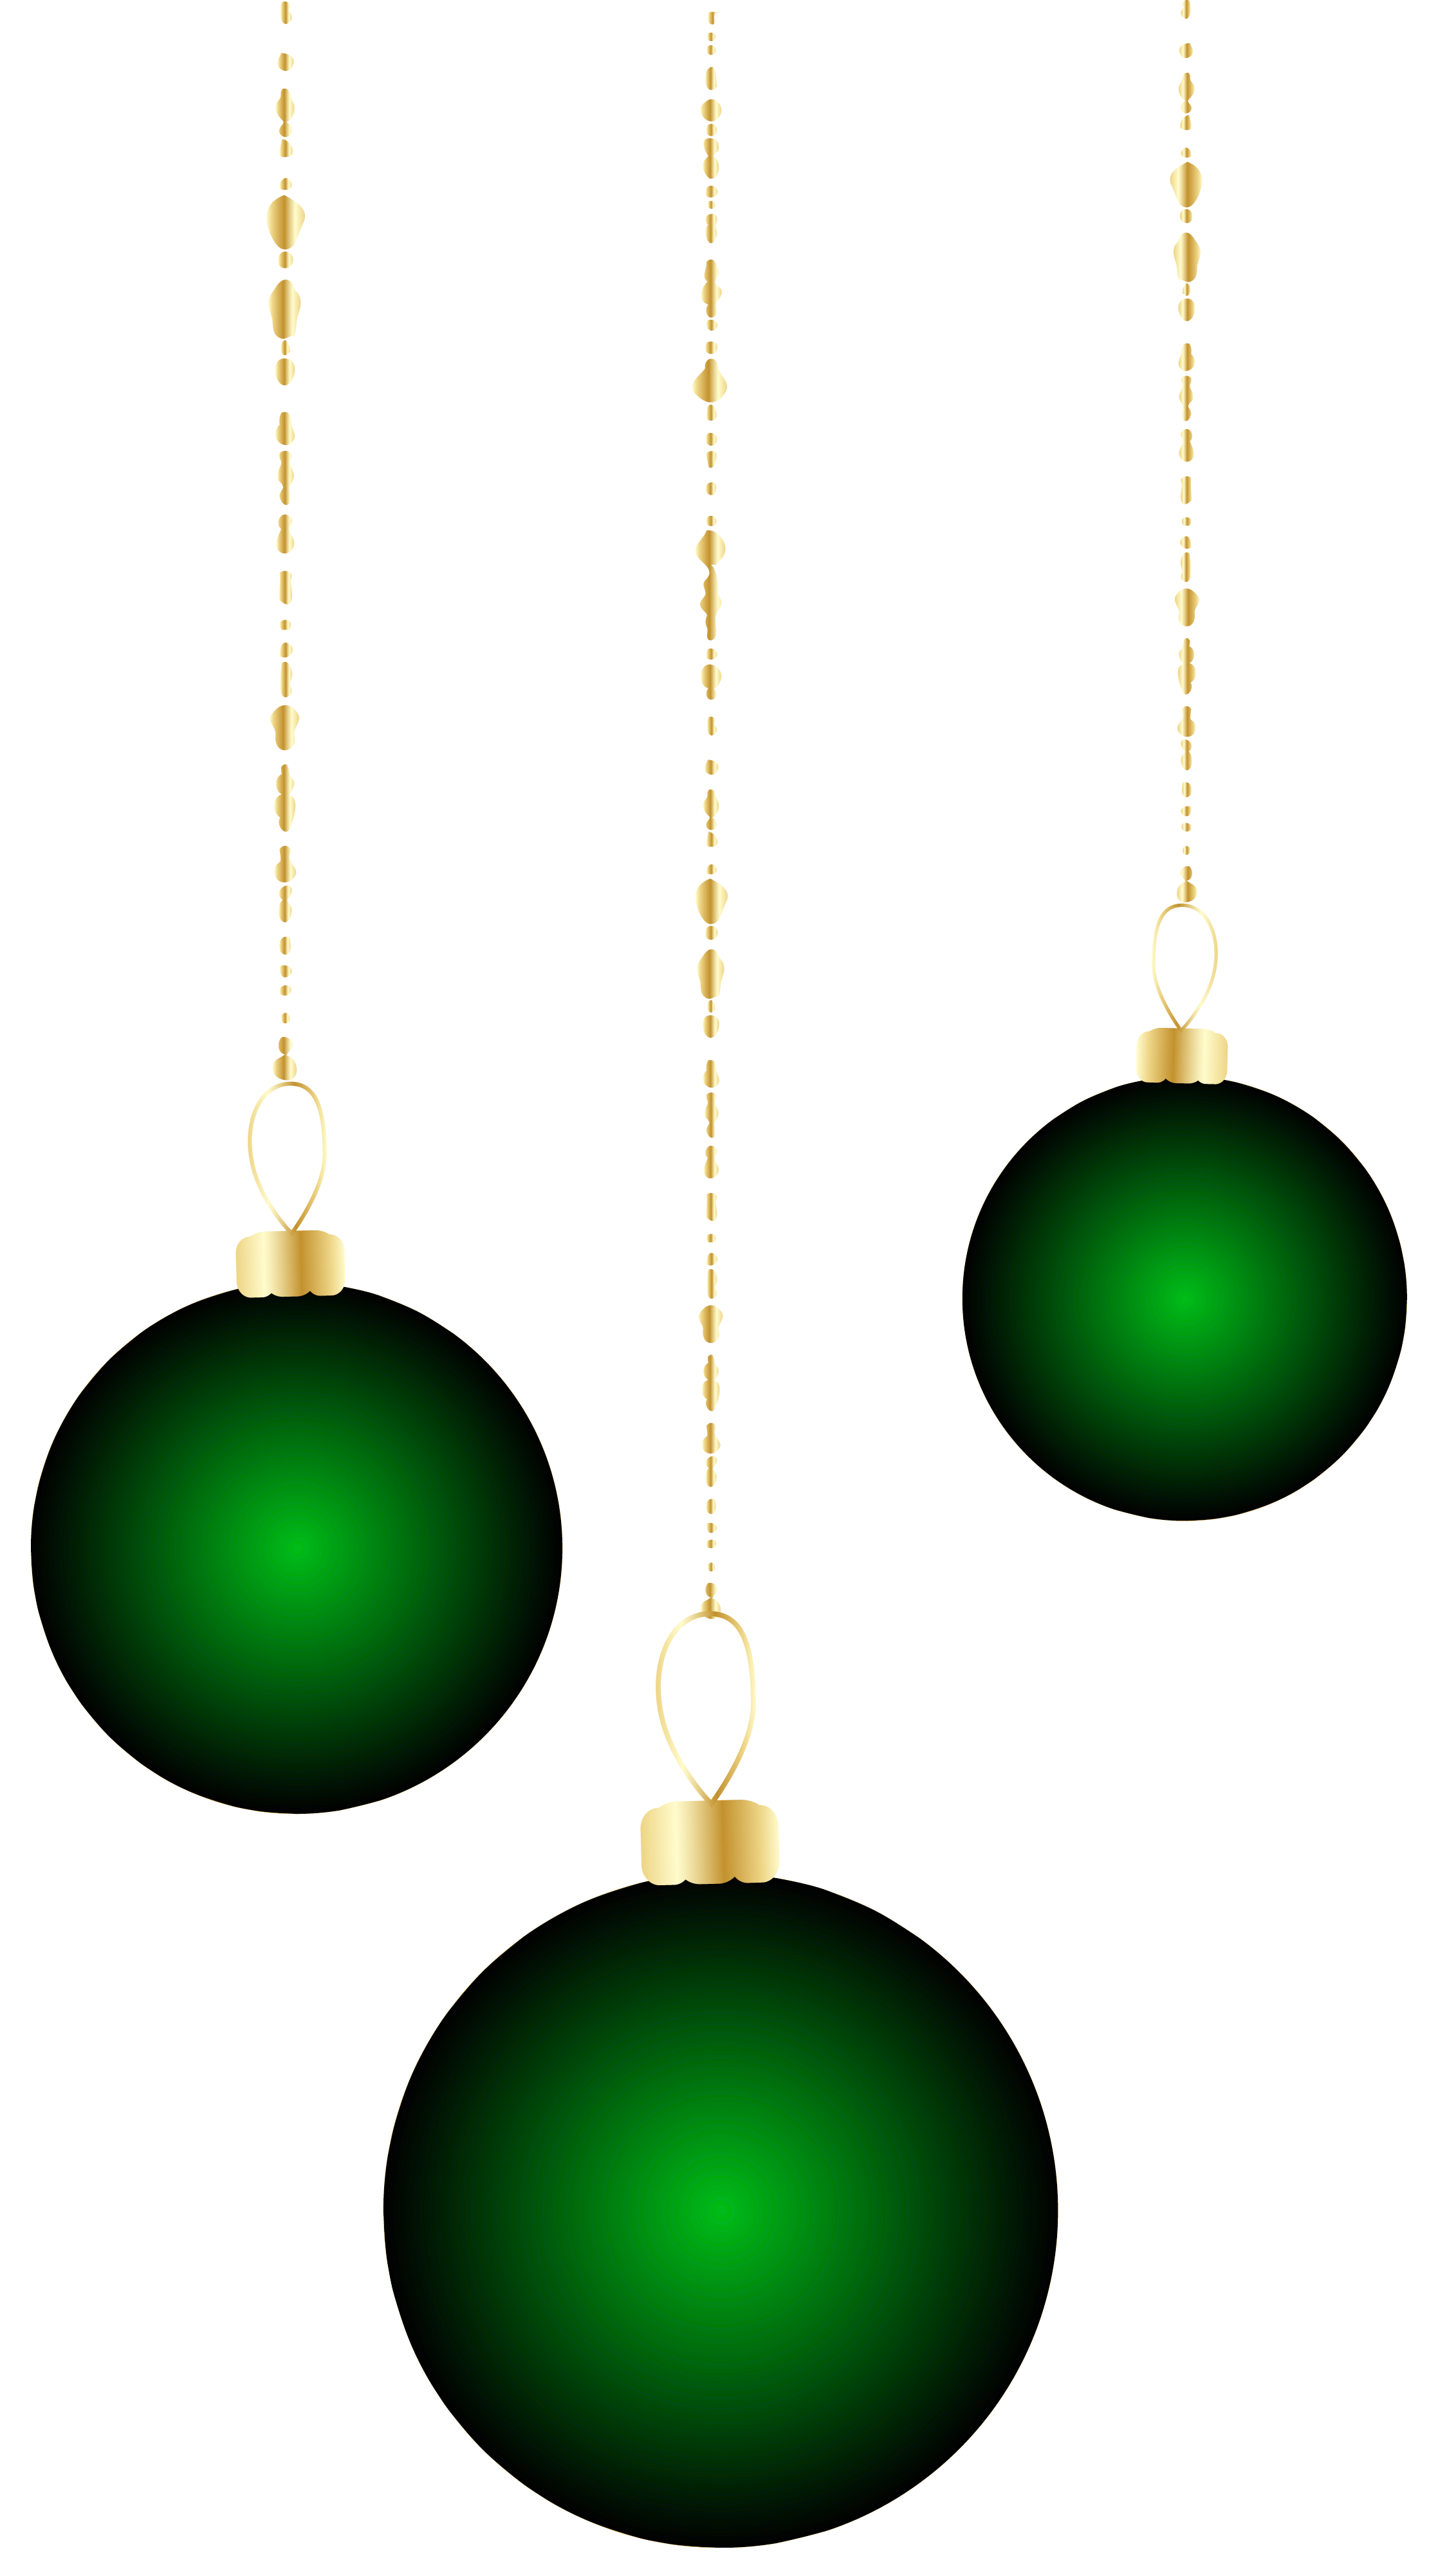 2235x4005 Transparent Christmas Green Ornaments Png Clipartu200b Gallery